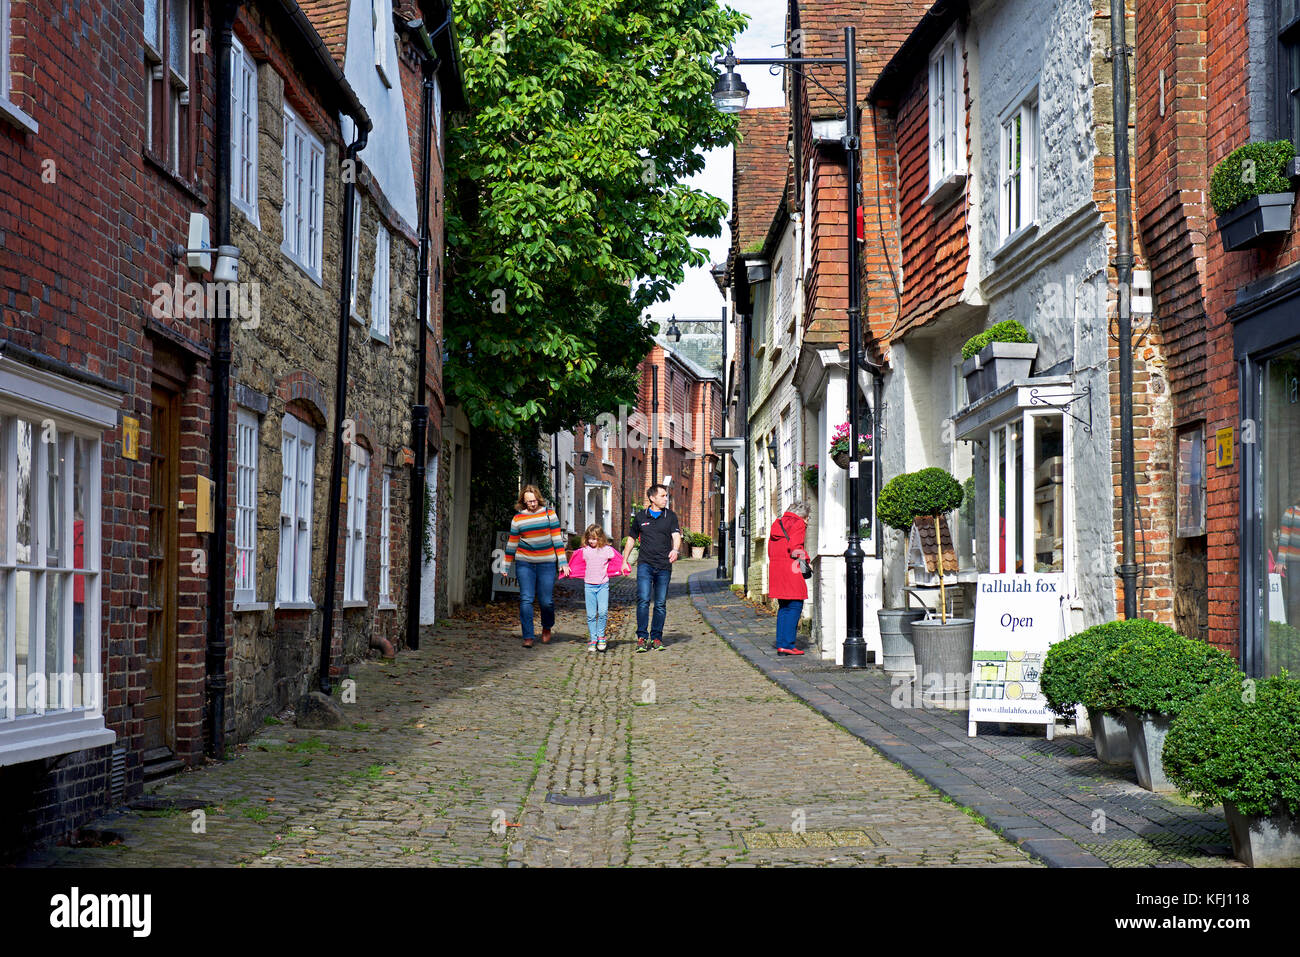 Family walking down cobbled Lombard Street in Petworth, a small town in West Sussex, England UK - Stock Image